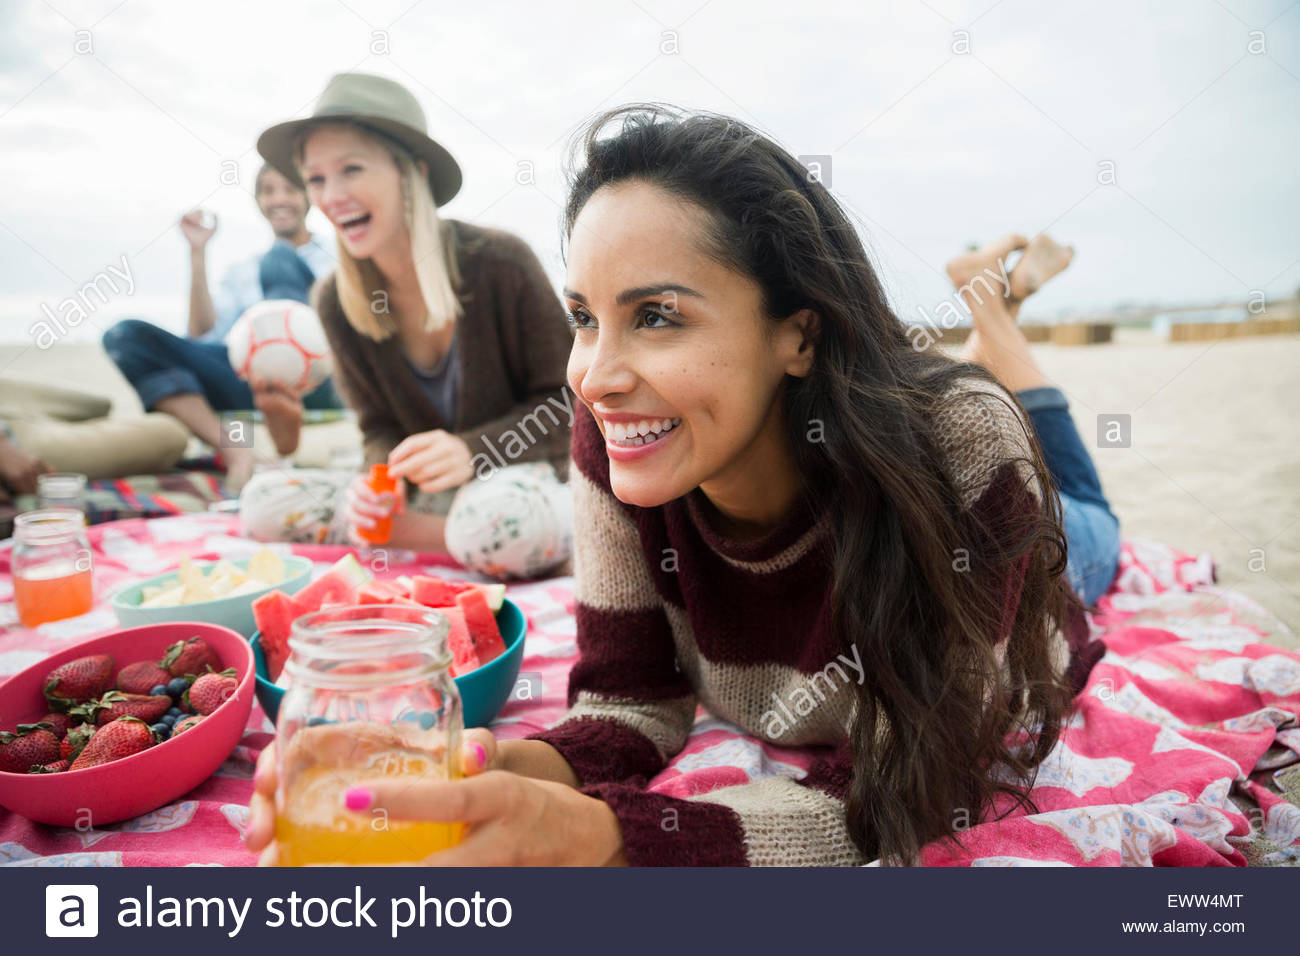 Friends relaxing picnicking on beach - Stock Image